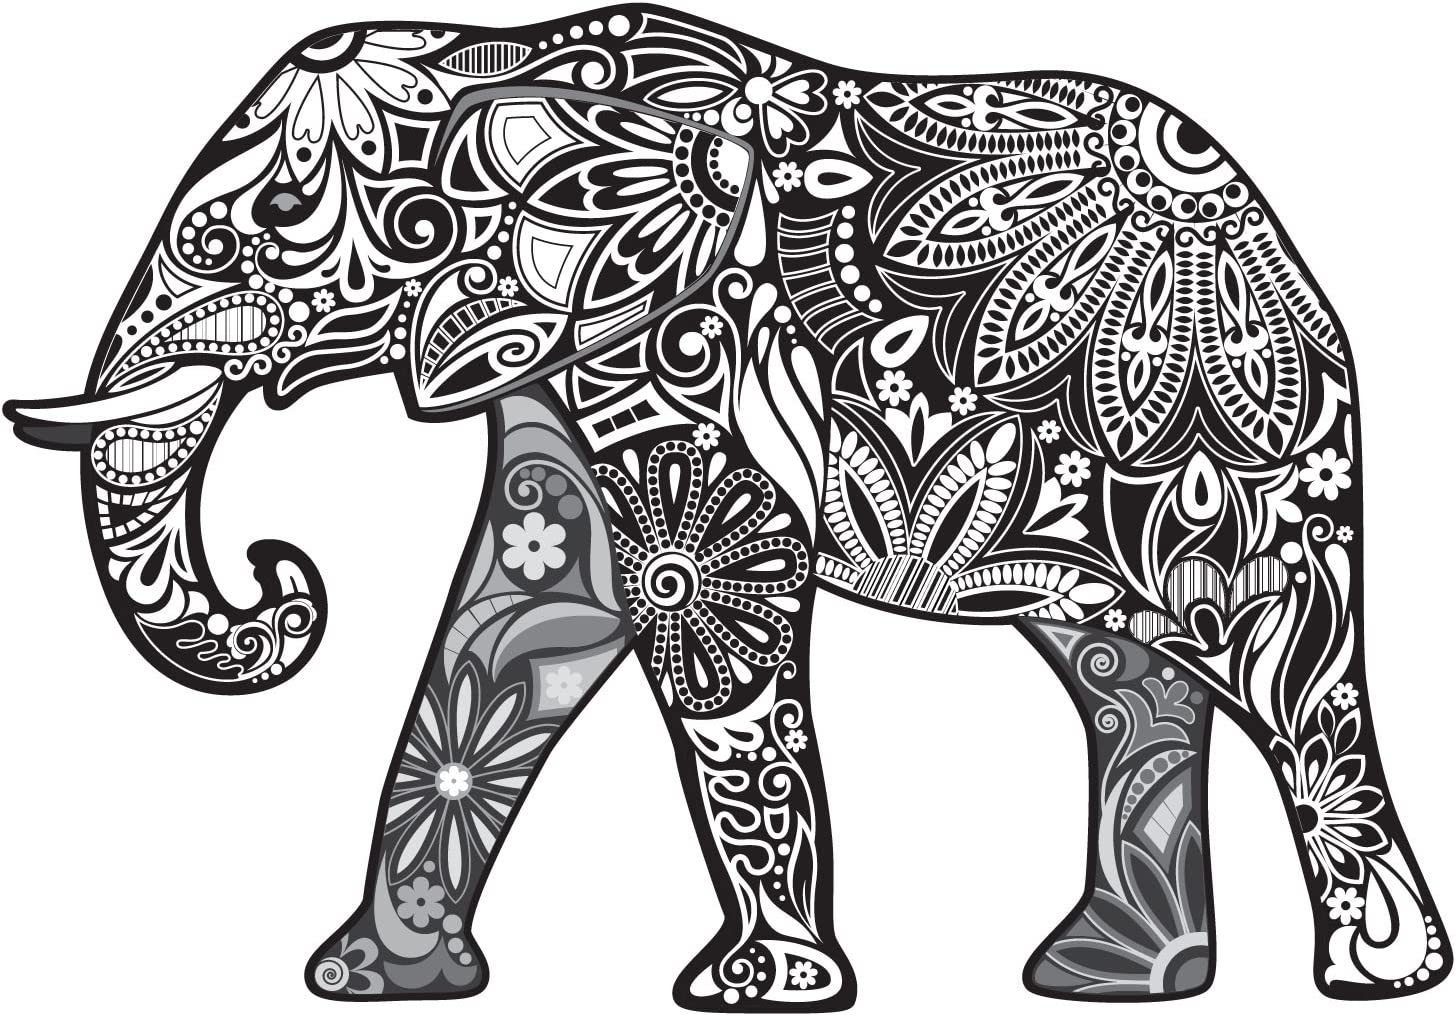 Black and White Paisley Elephant - 5 Inch Full Color Decal for Macbooks or Laptops - Proudly Made in The USA from Adhesive Vinyl